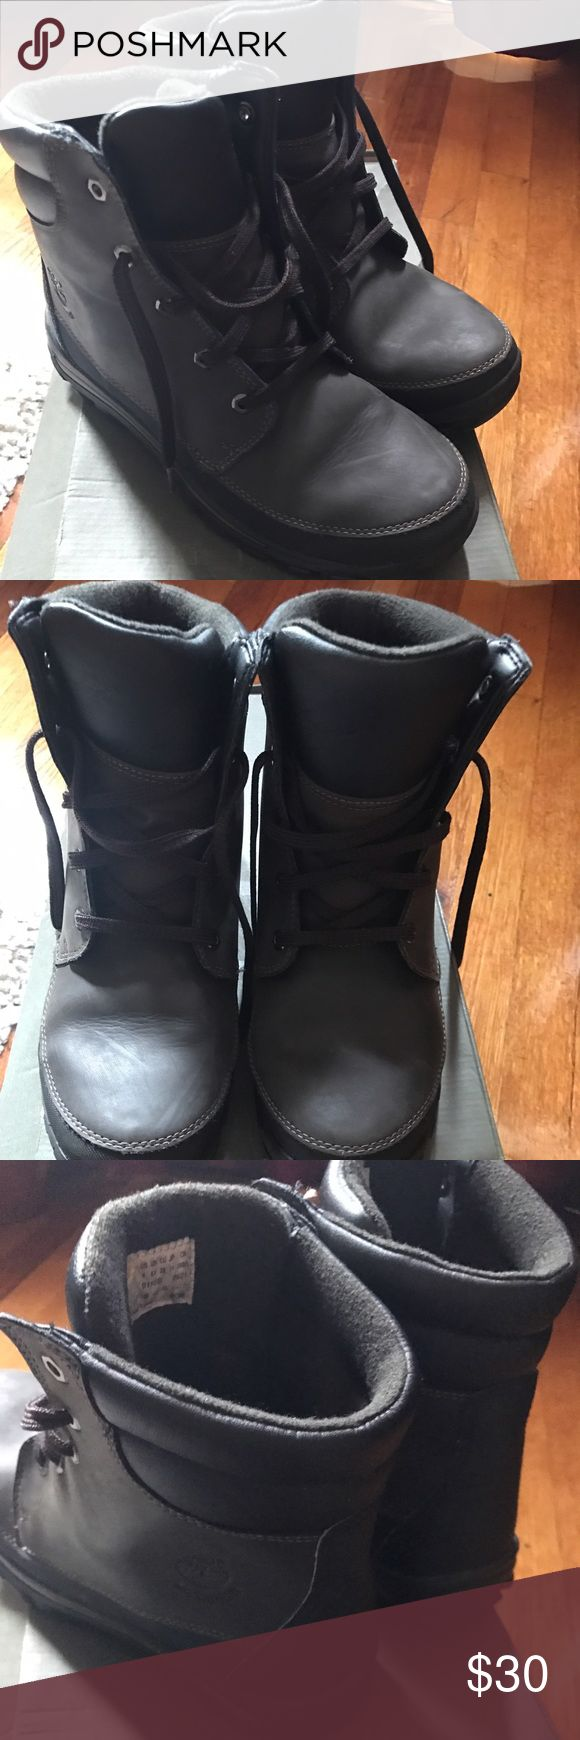 Boys Timberland boot. Boys timberland boot in black and brown. Great for those cold months and school. Is good condition. Lots of life left in them. Shoes Boots